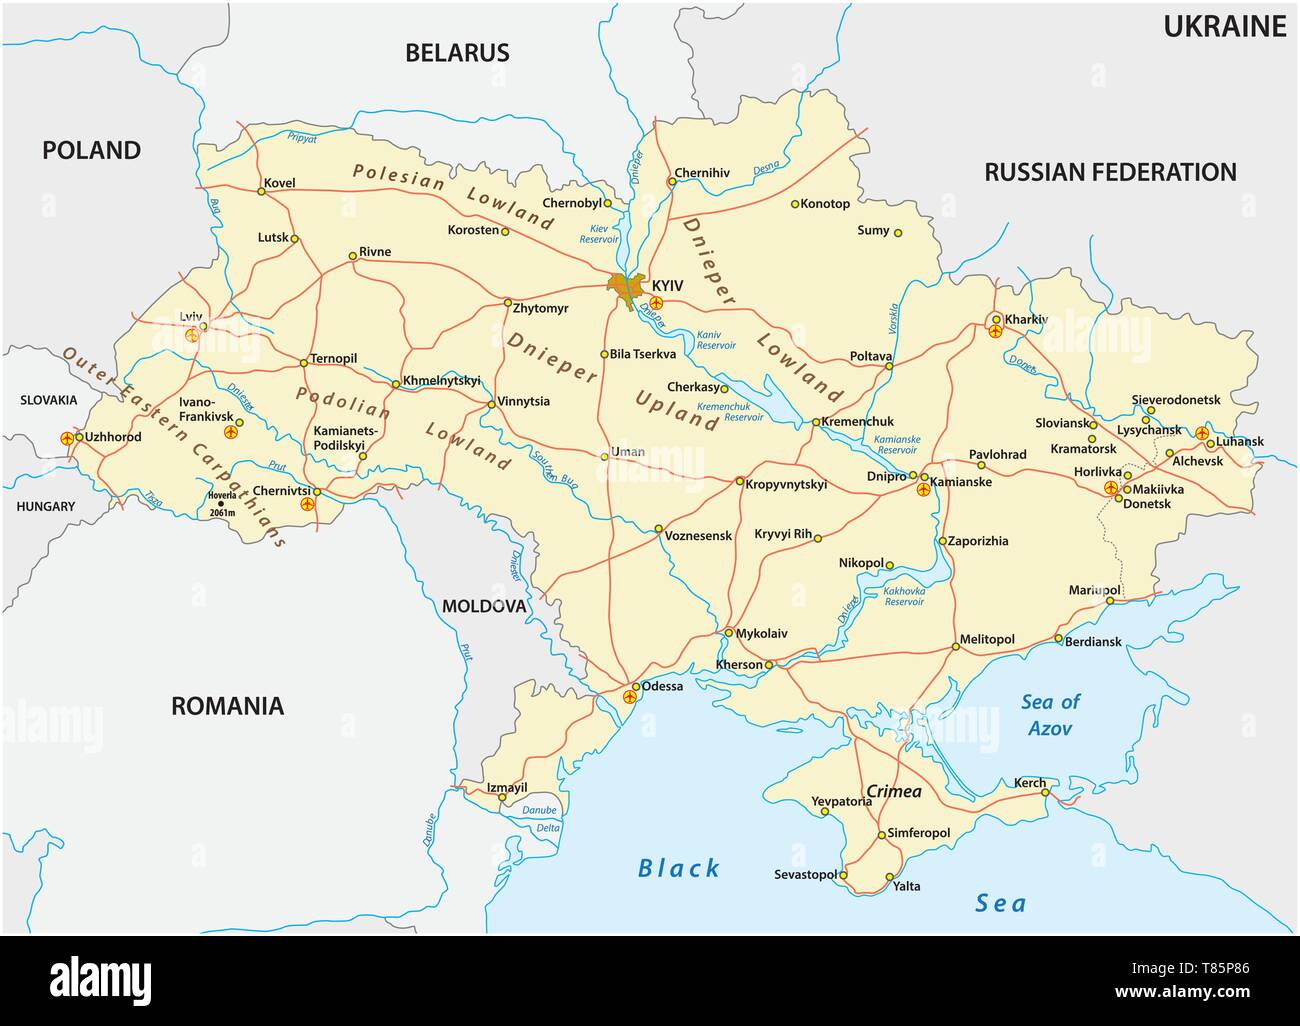 detailed colored vector road map of ukraine - Stock Image